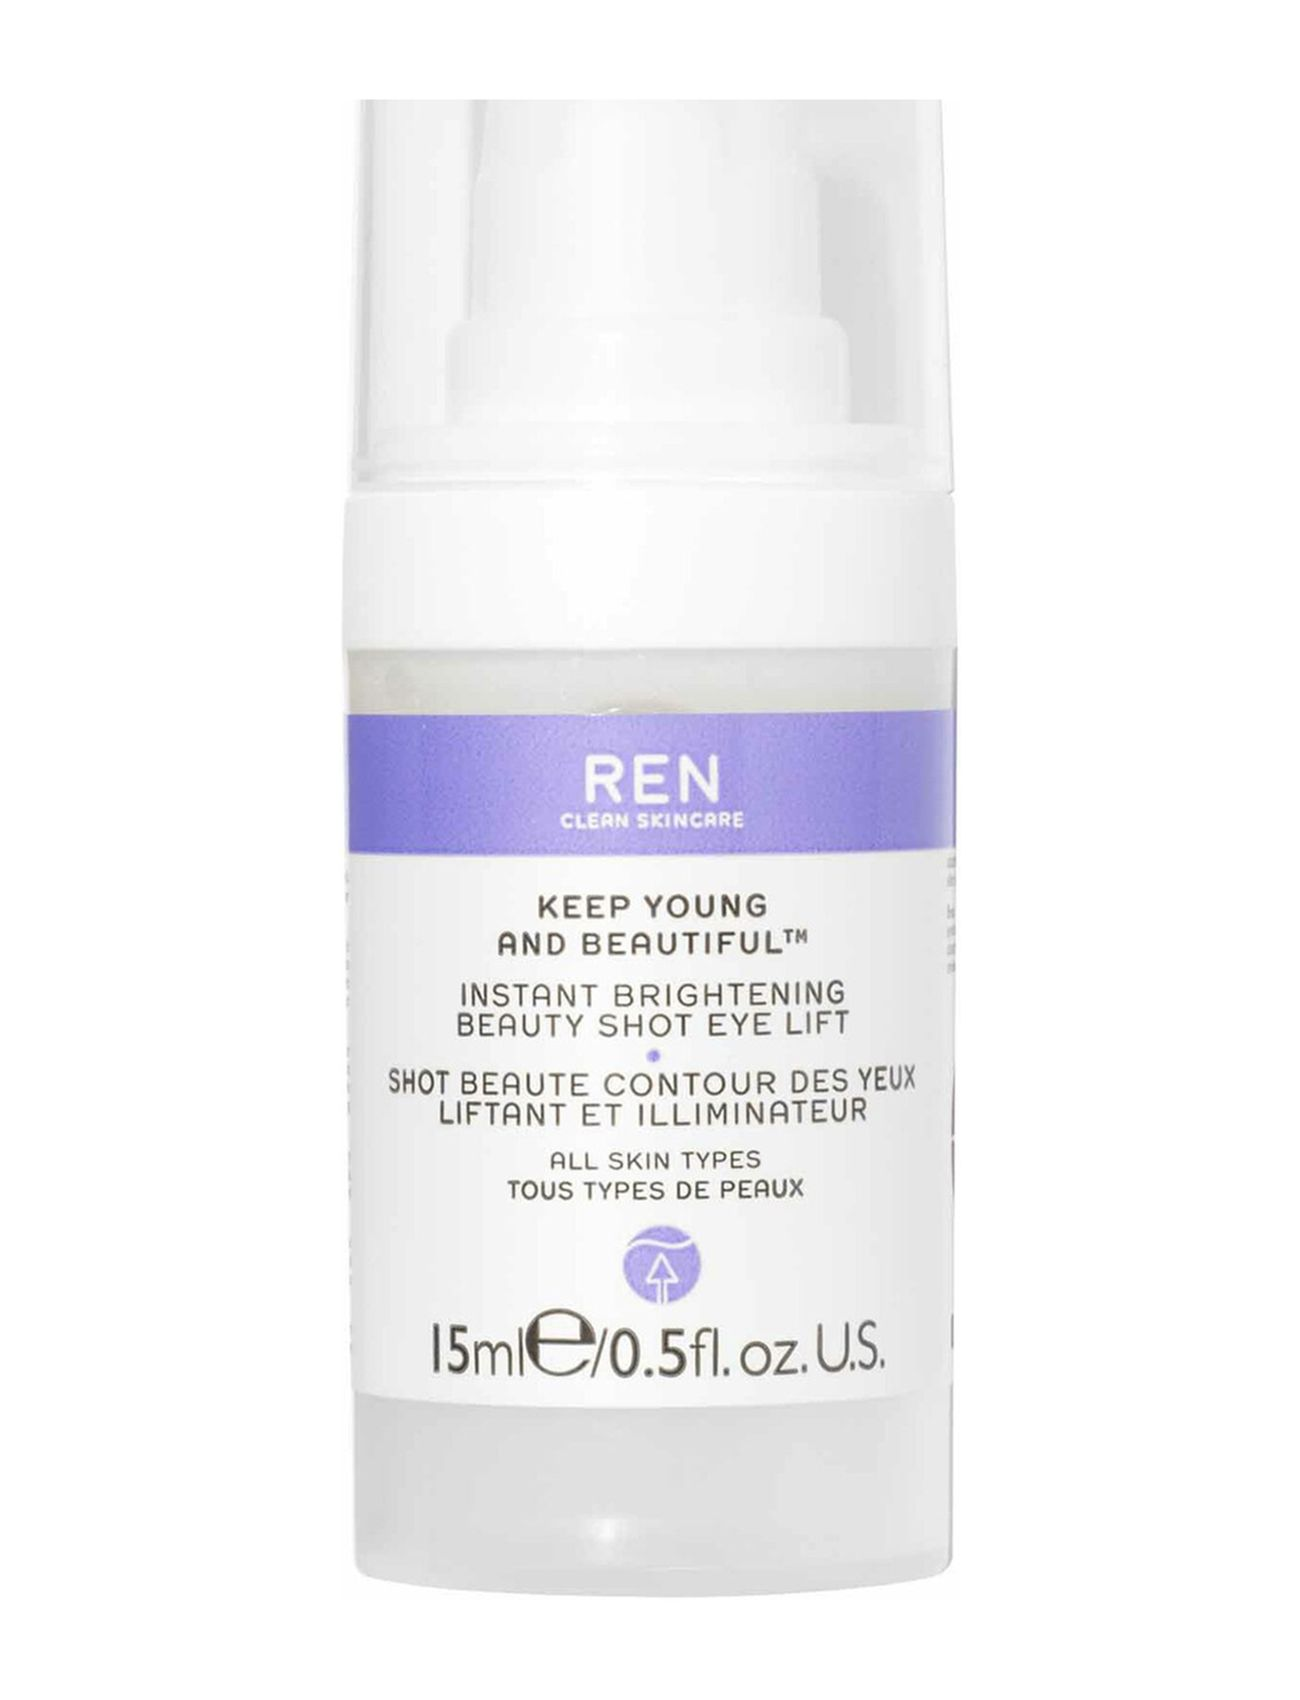 Image of Instant Brightening Beauty Shot Eye Lift Beauty WOMEN Skin Care Face Eye Cream Nude REN (3413092817)